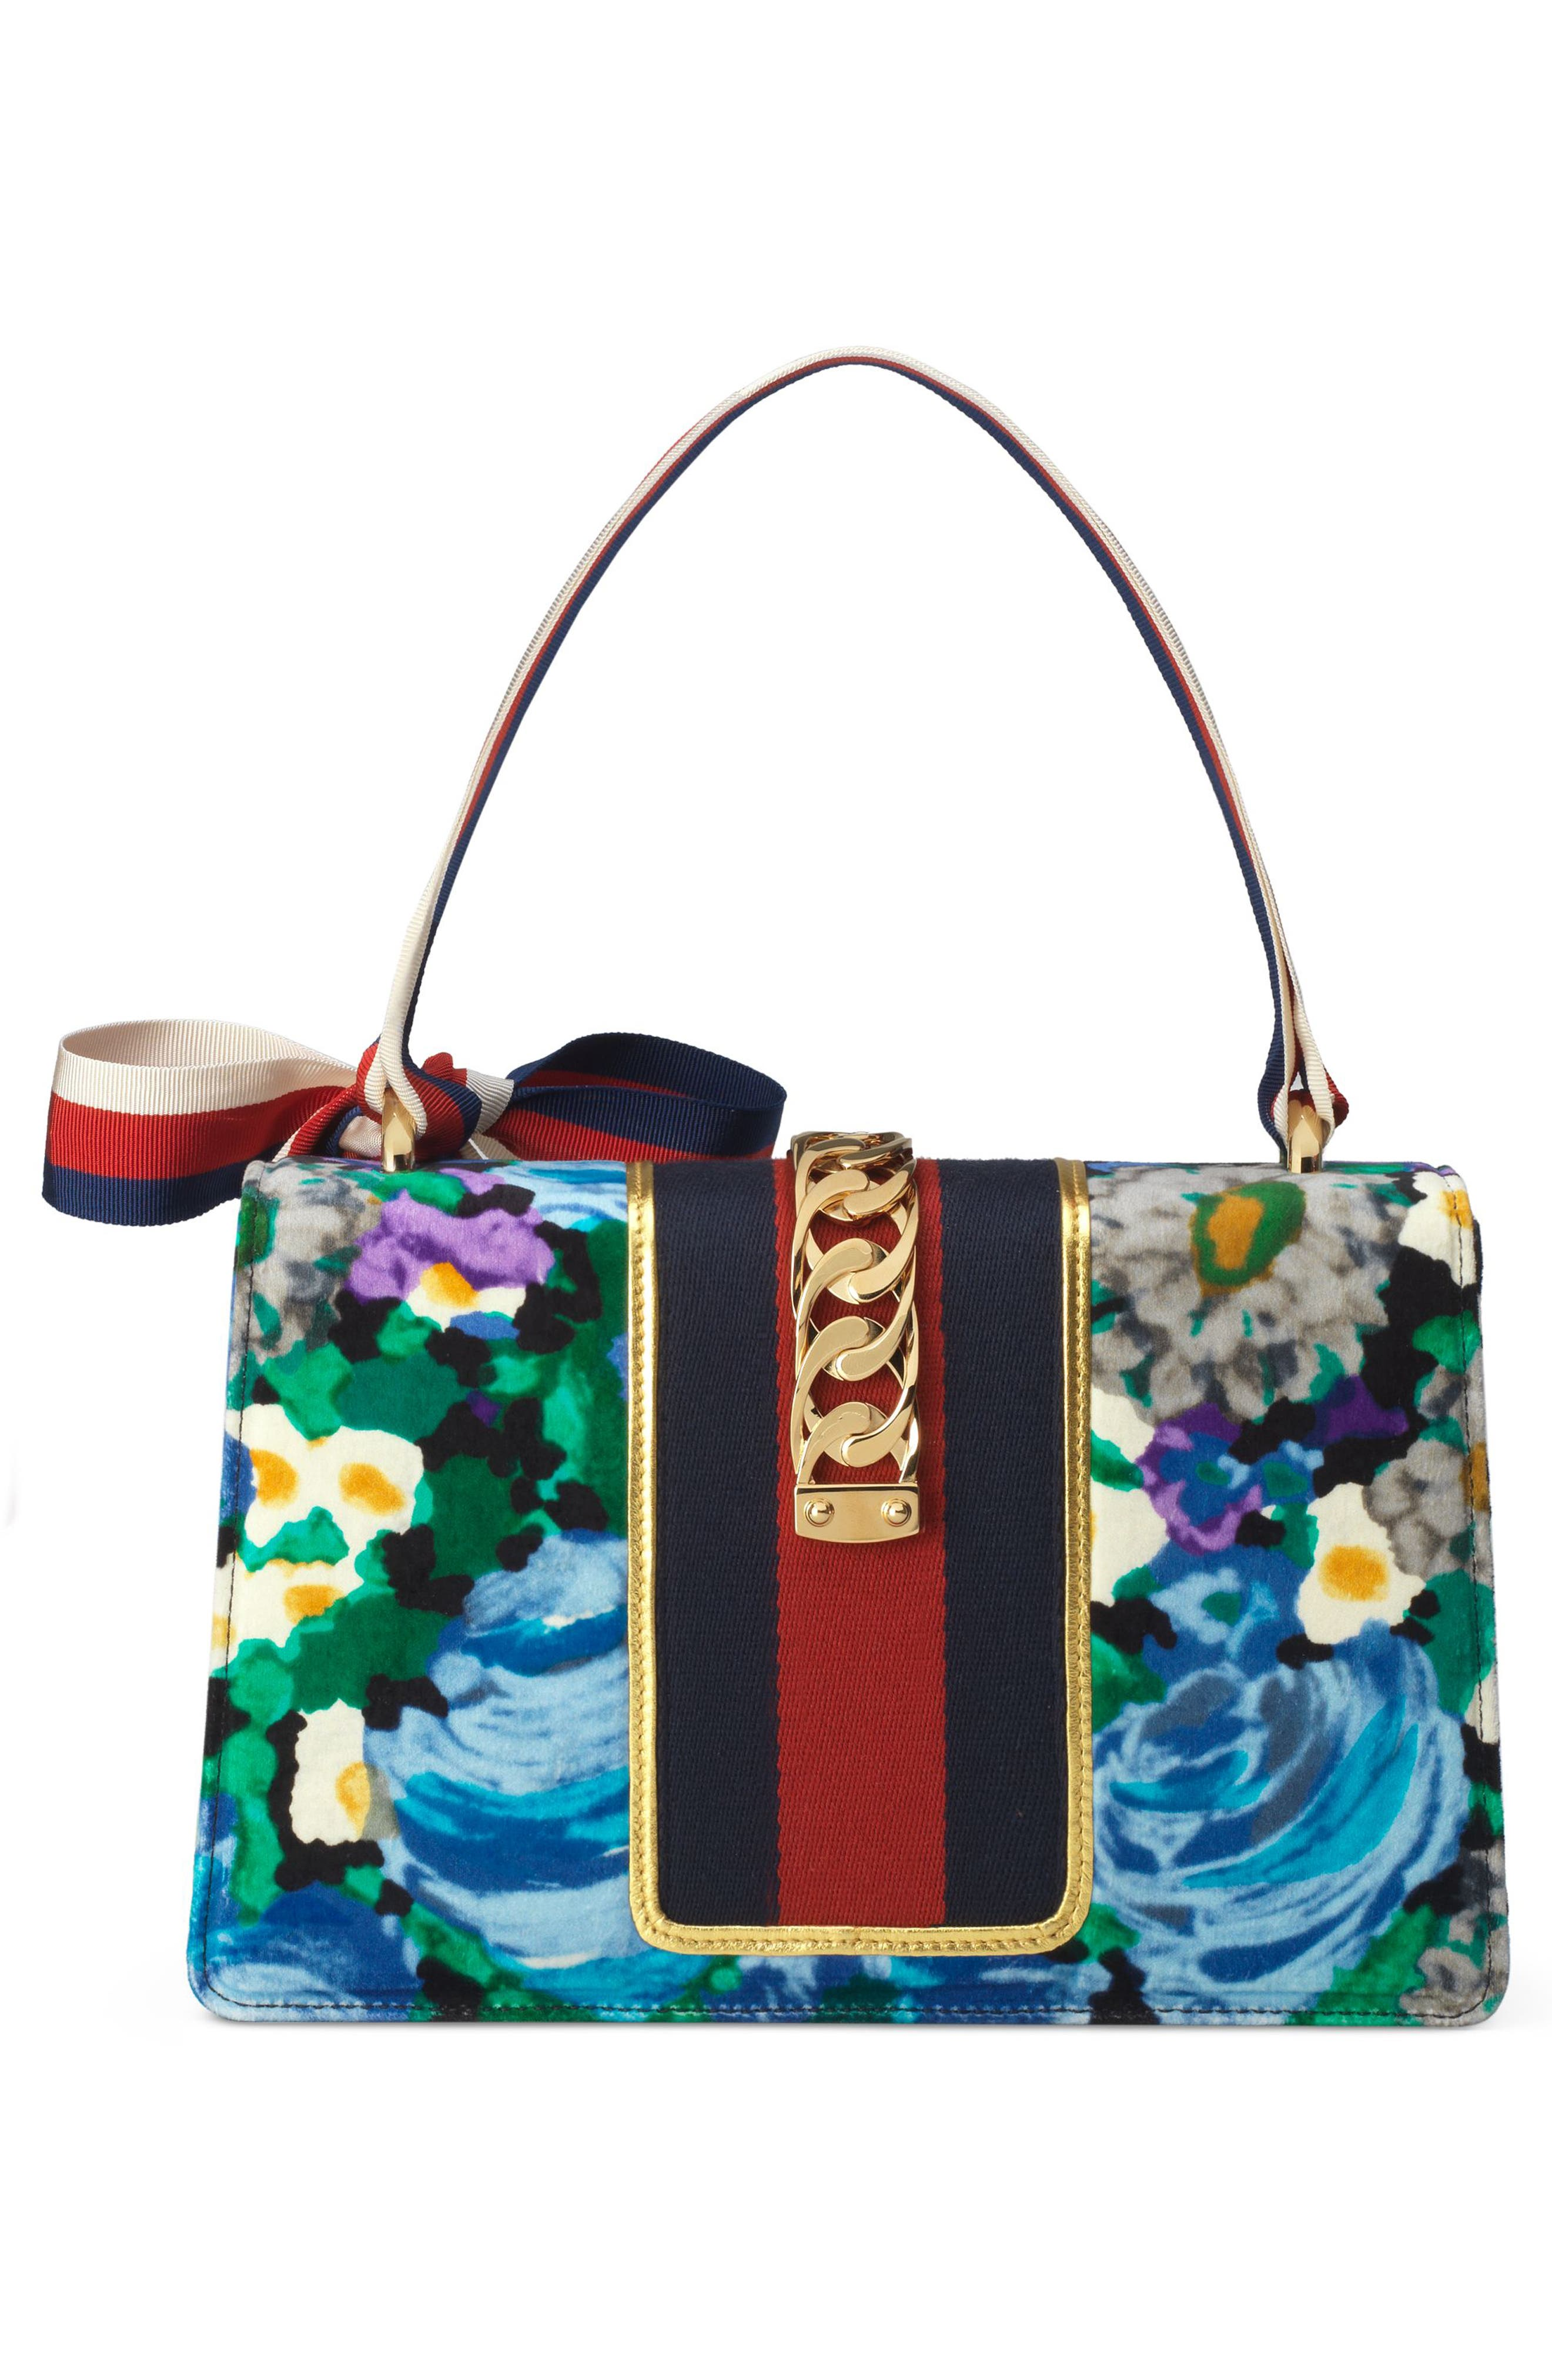 GUCCI,                             Small Floral Print Leather Shoulder Bag,                             Alternate thumbnail 3, color,                             001